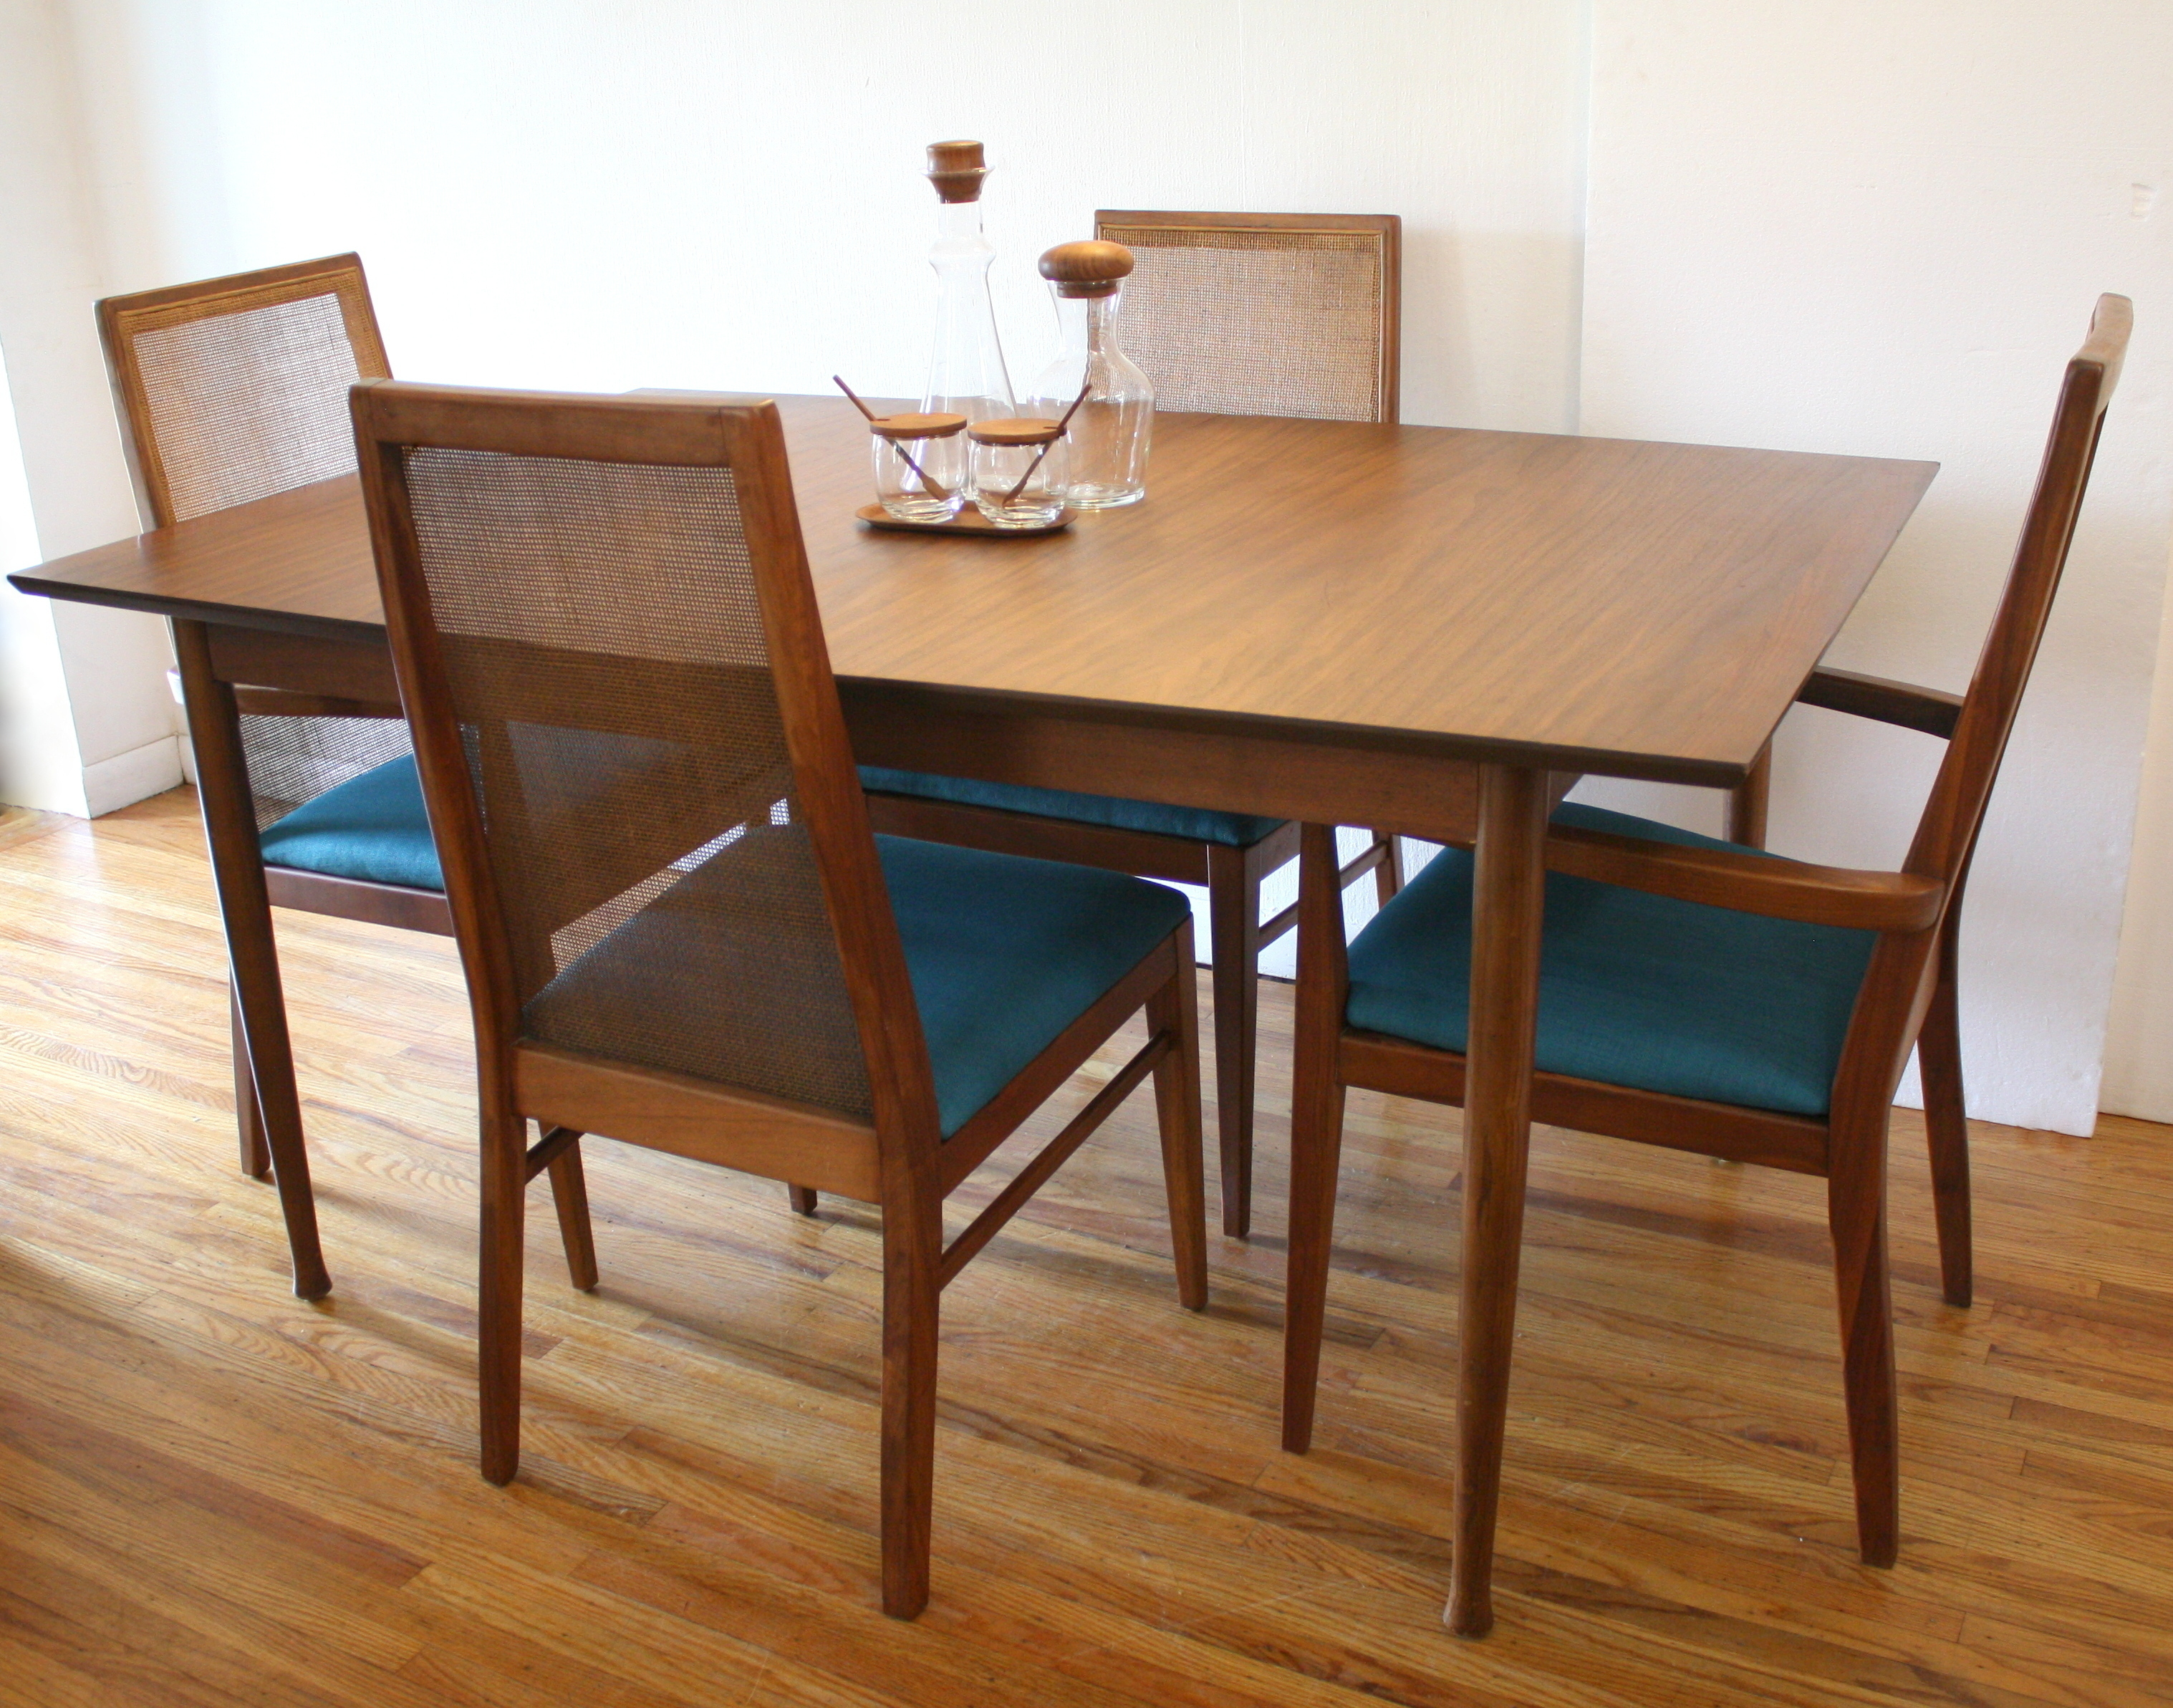 Mcm Dining Set Teal Seats Rattan Chairs 2JPG